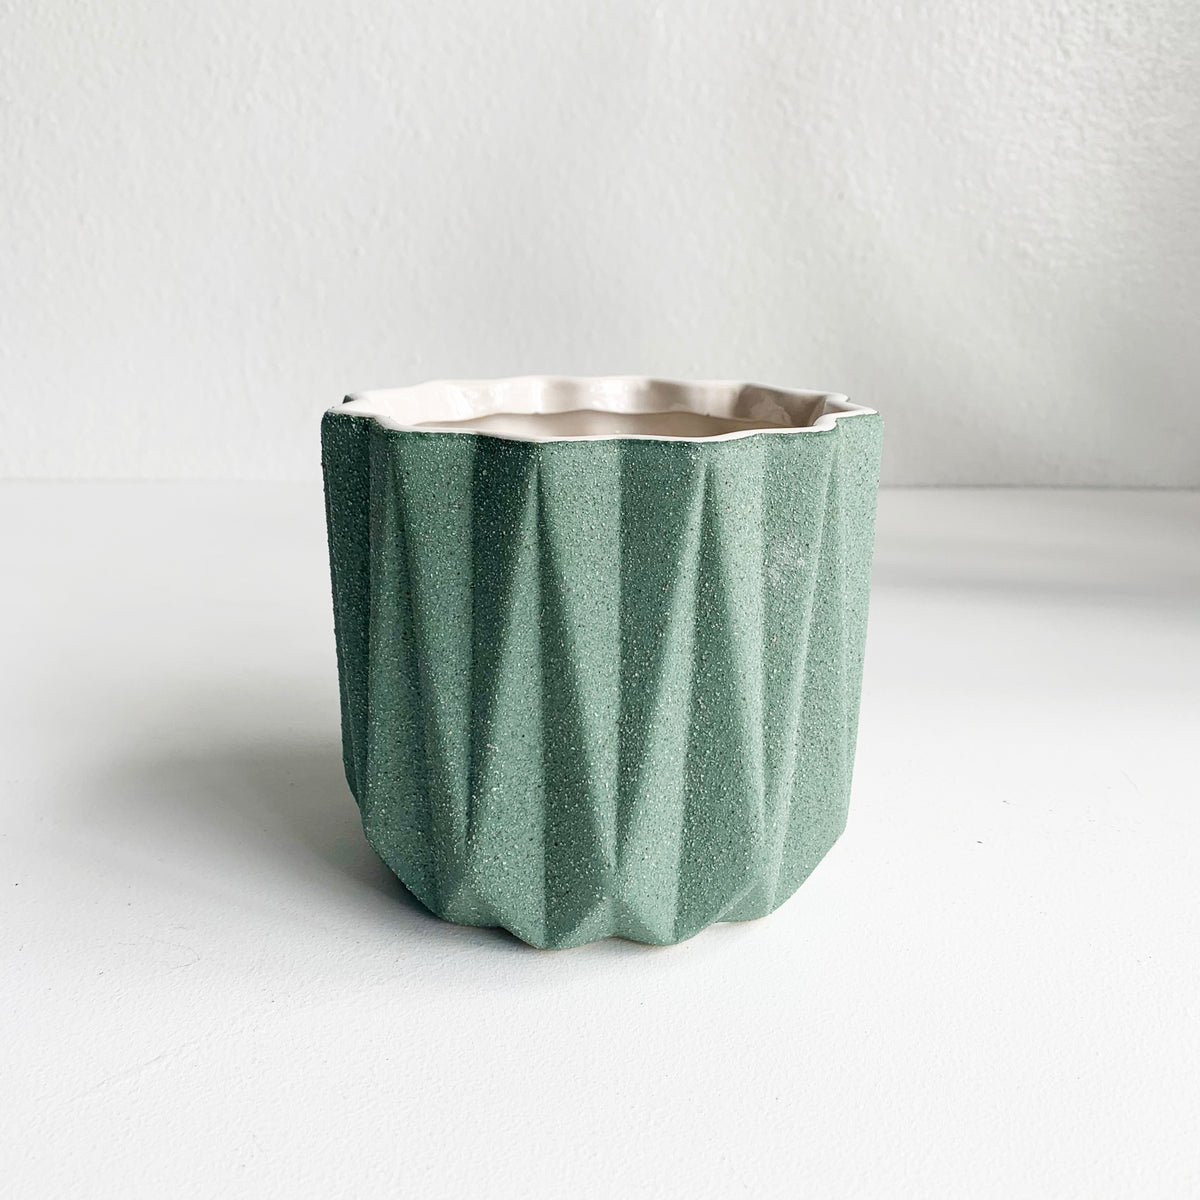 "5"" Pot/Planter-Dark Pistachio Green with Sandstone Finish"